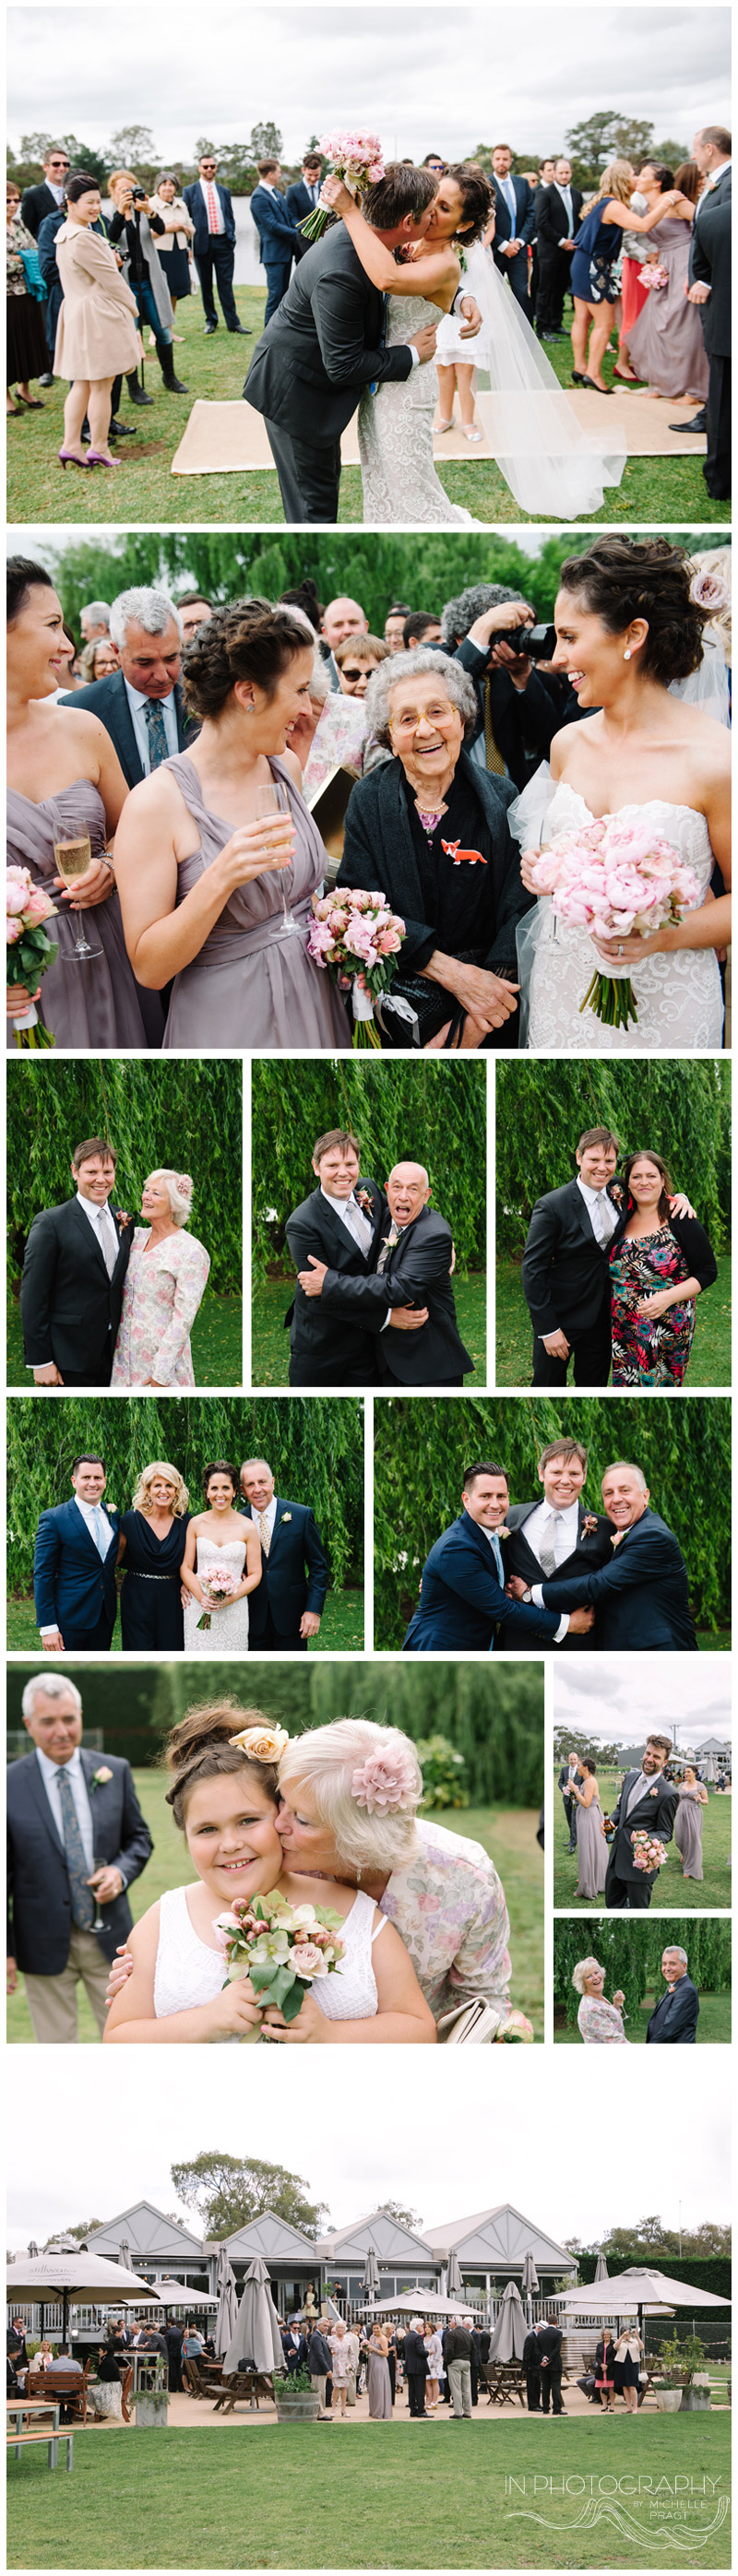 family photographs at Stillwater at Crittenden wedding